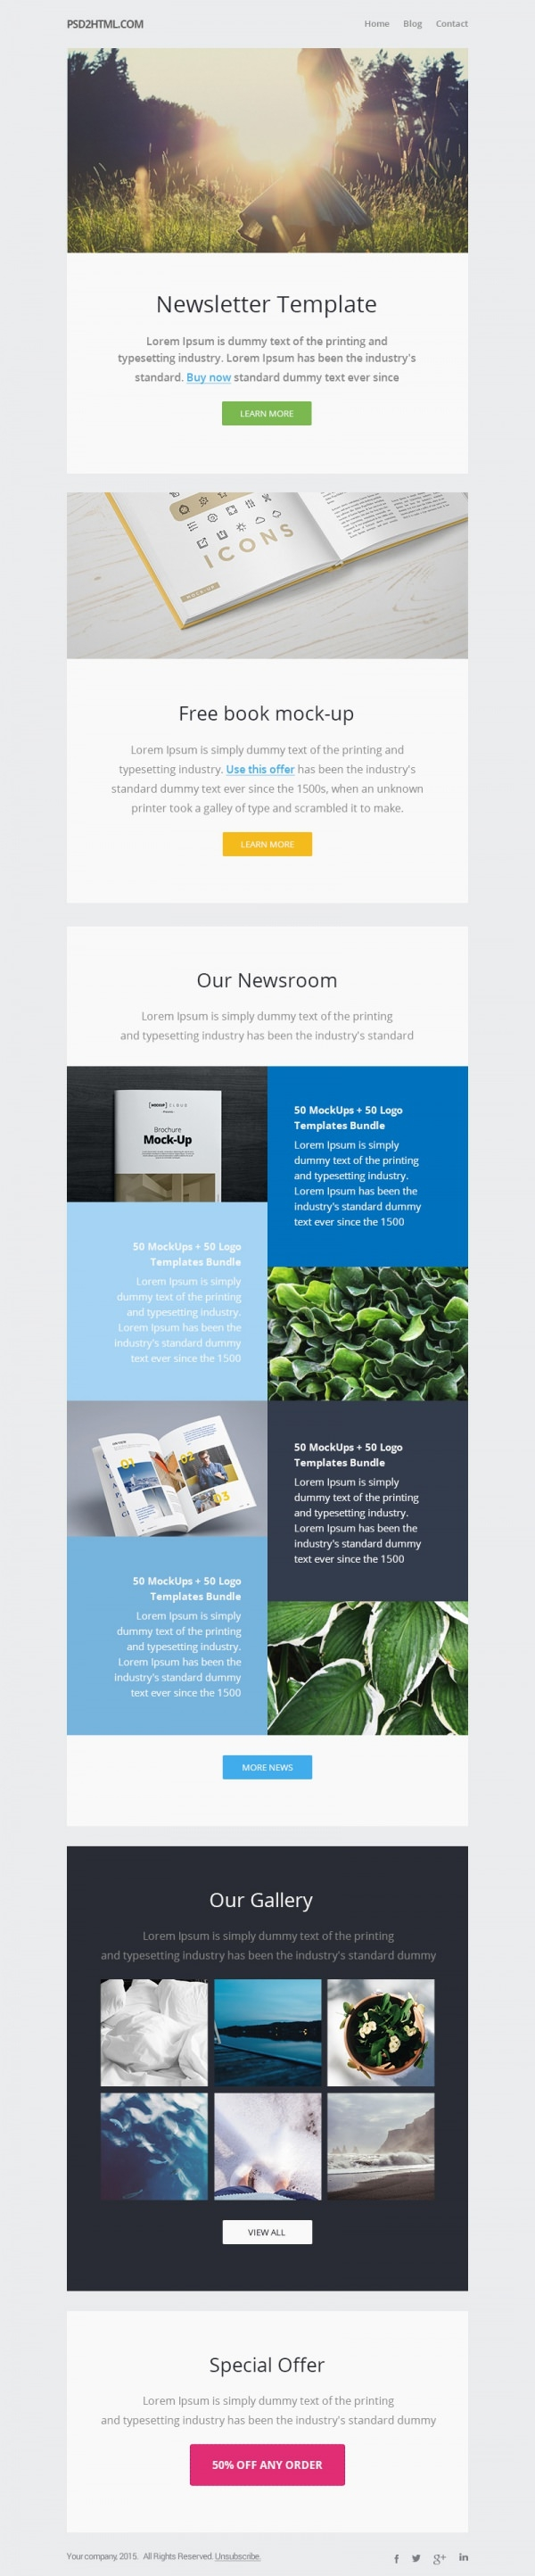 Free Psd Newsletter Template Design